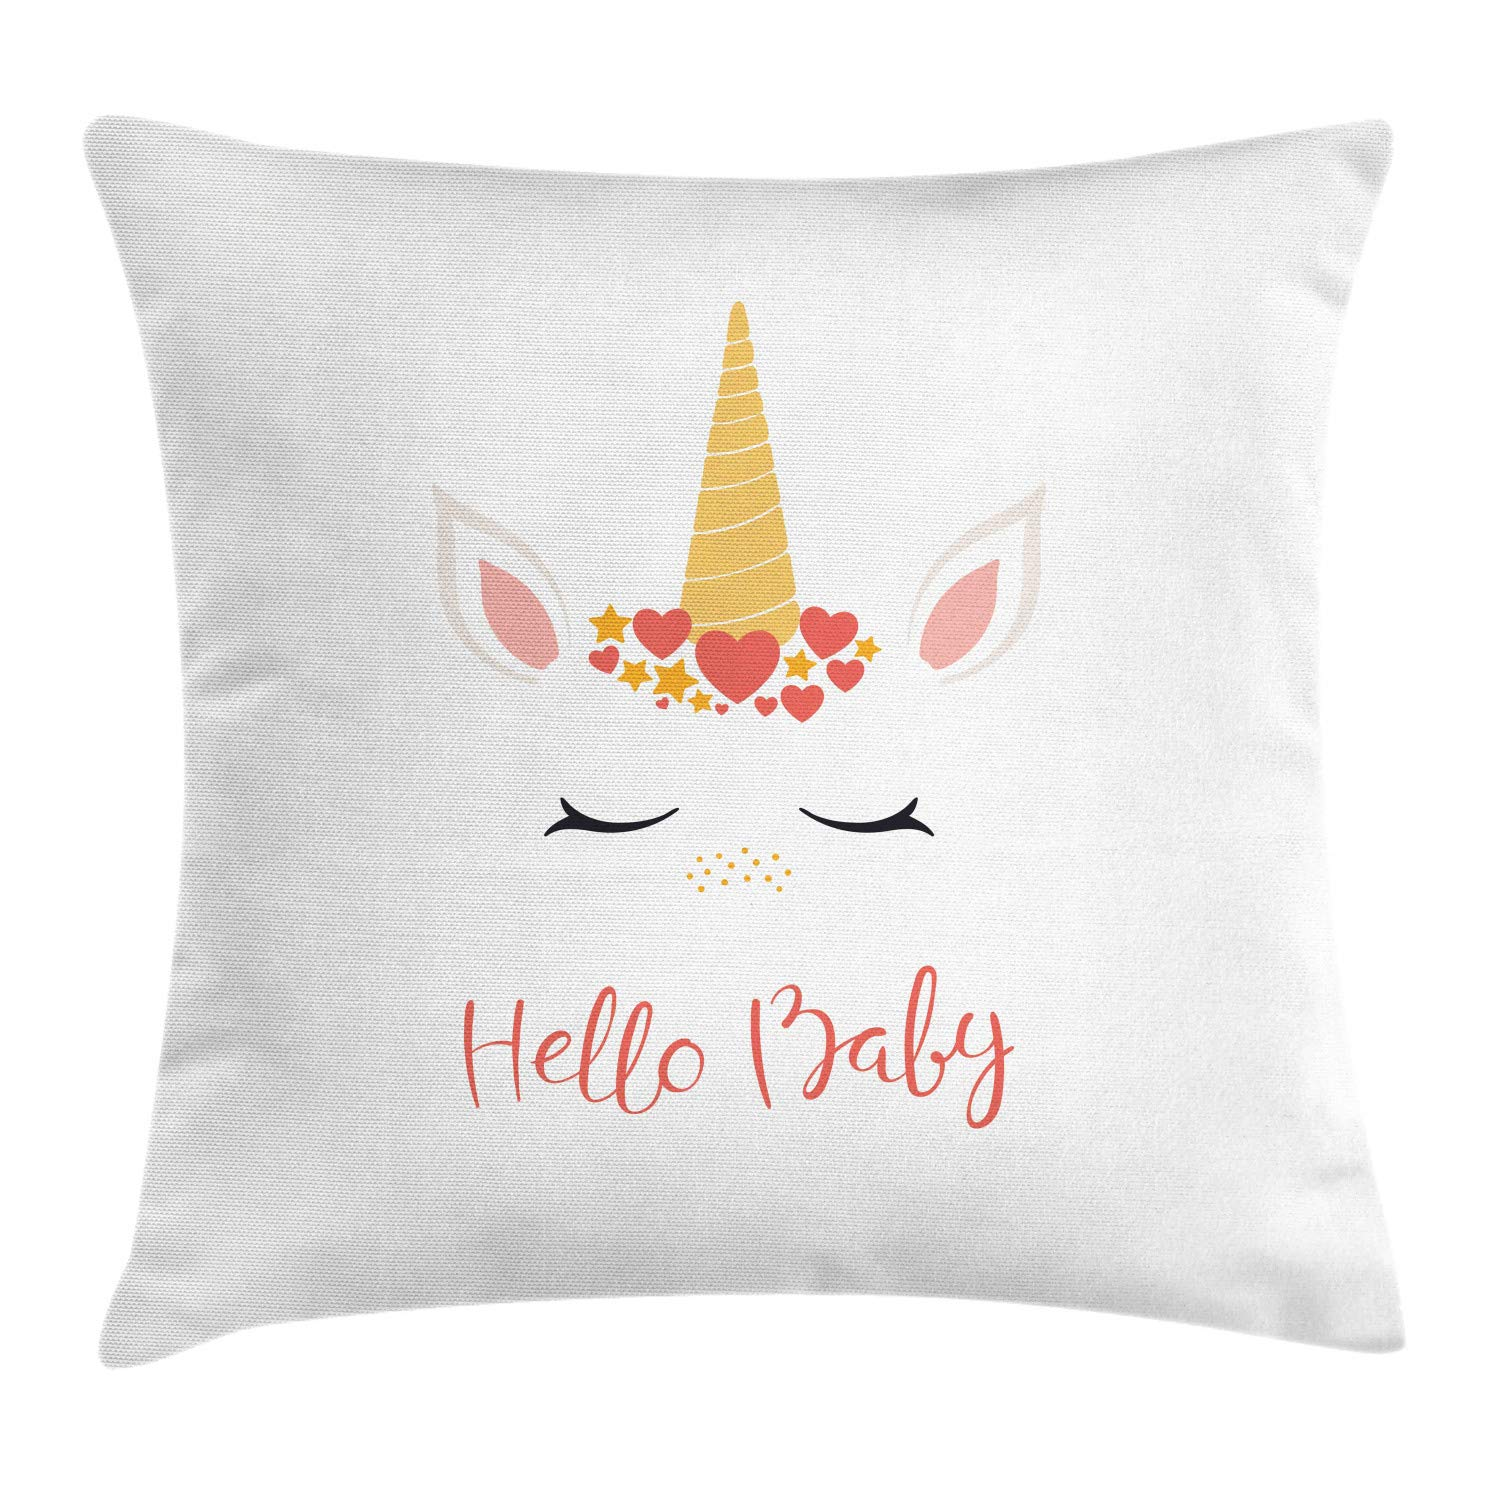 Ambesonne Hello Baby Throw Pillow Cushion Cover, Nursery Lettering and Animal Dreaming with Horns Hearts Children's Theme, Decorative Square Accent Pillow Case, 24'' X 24'', White Burnt Sienna by Ambesonne